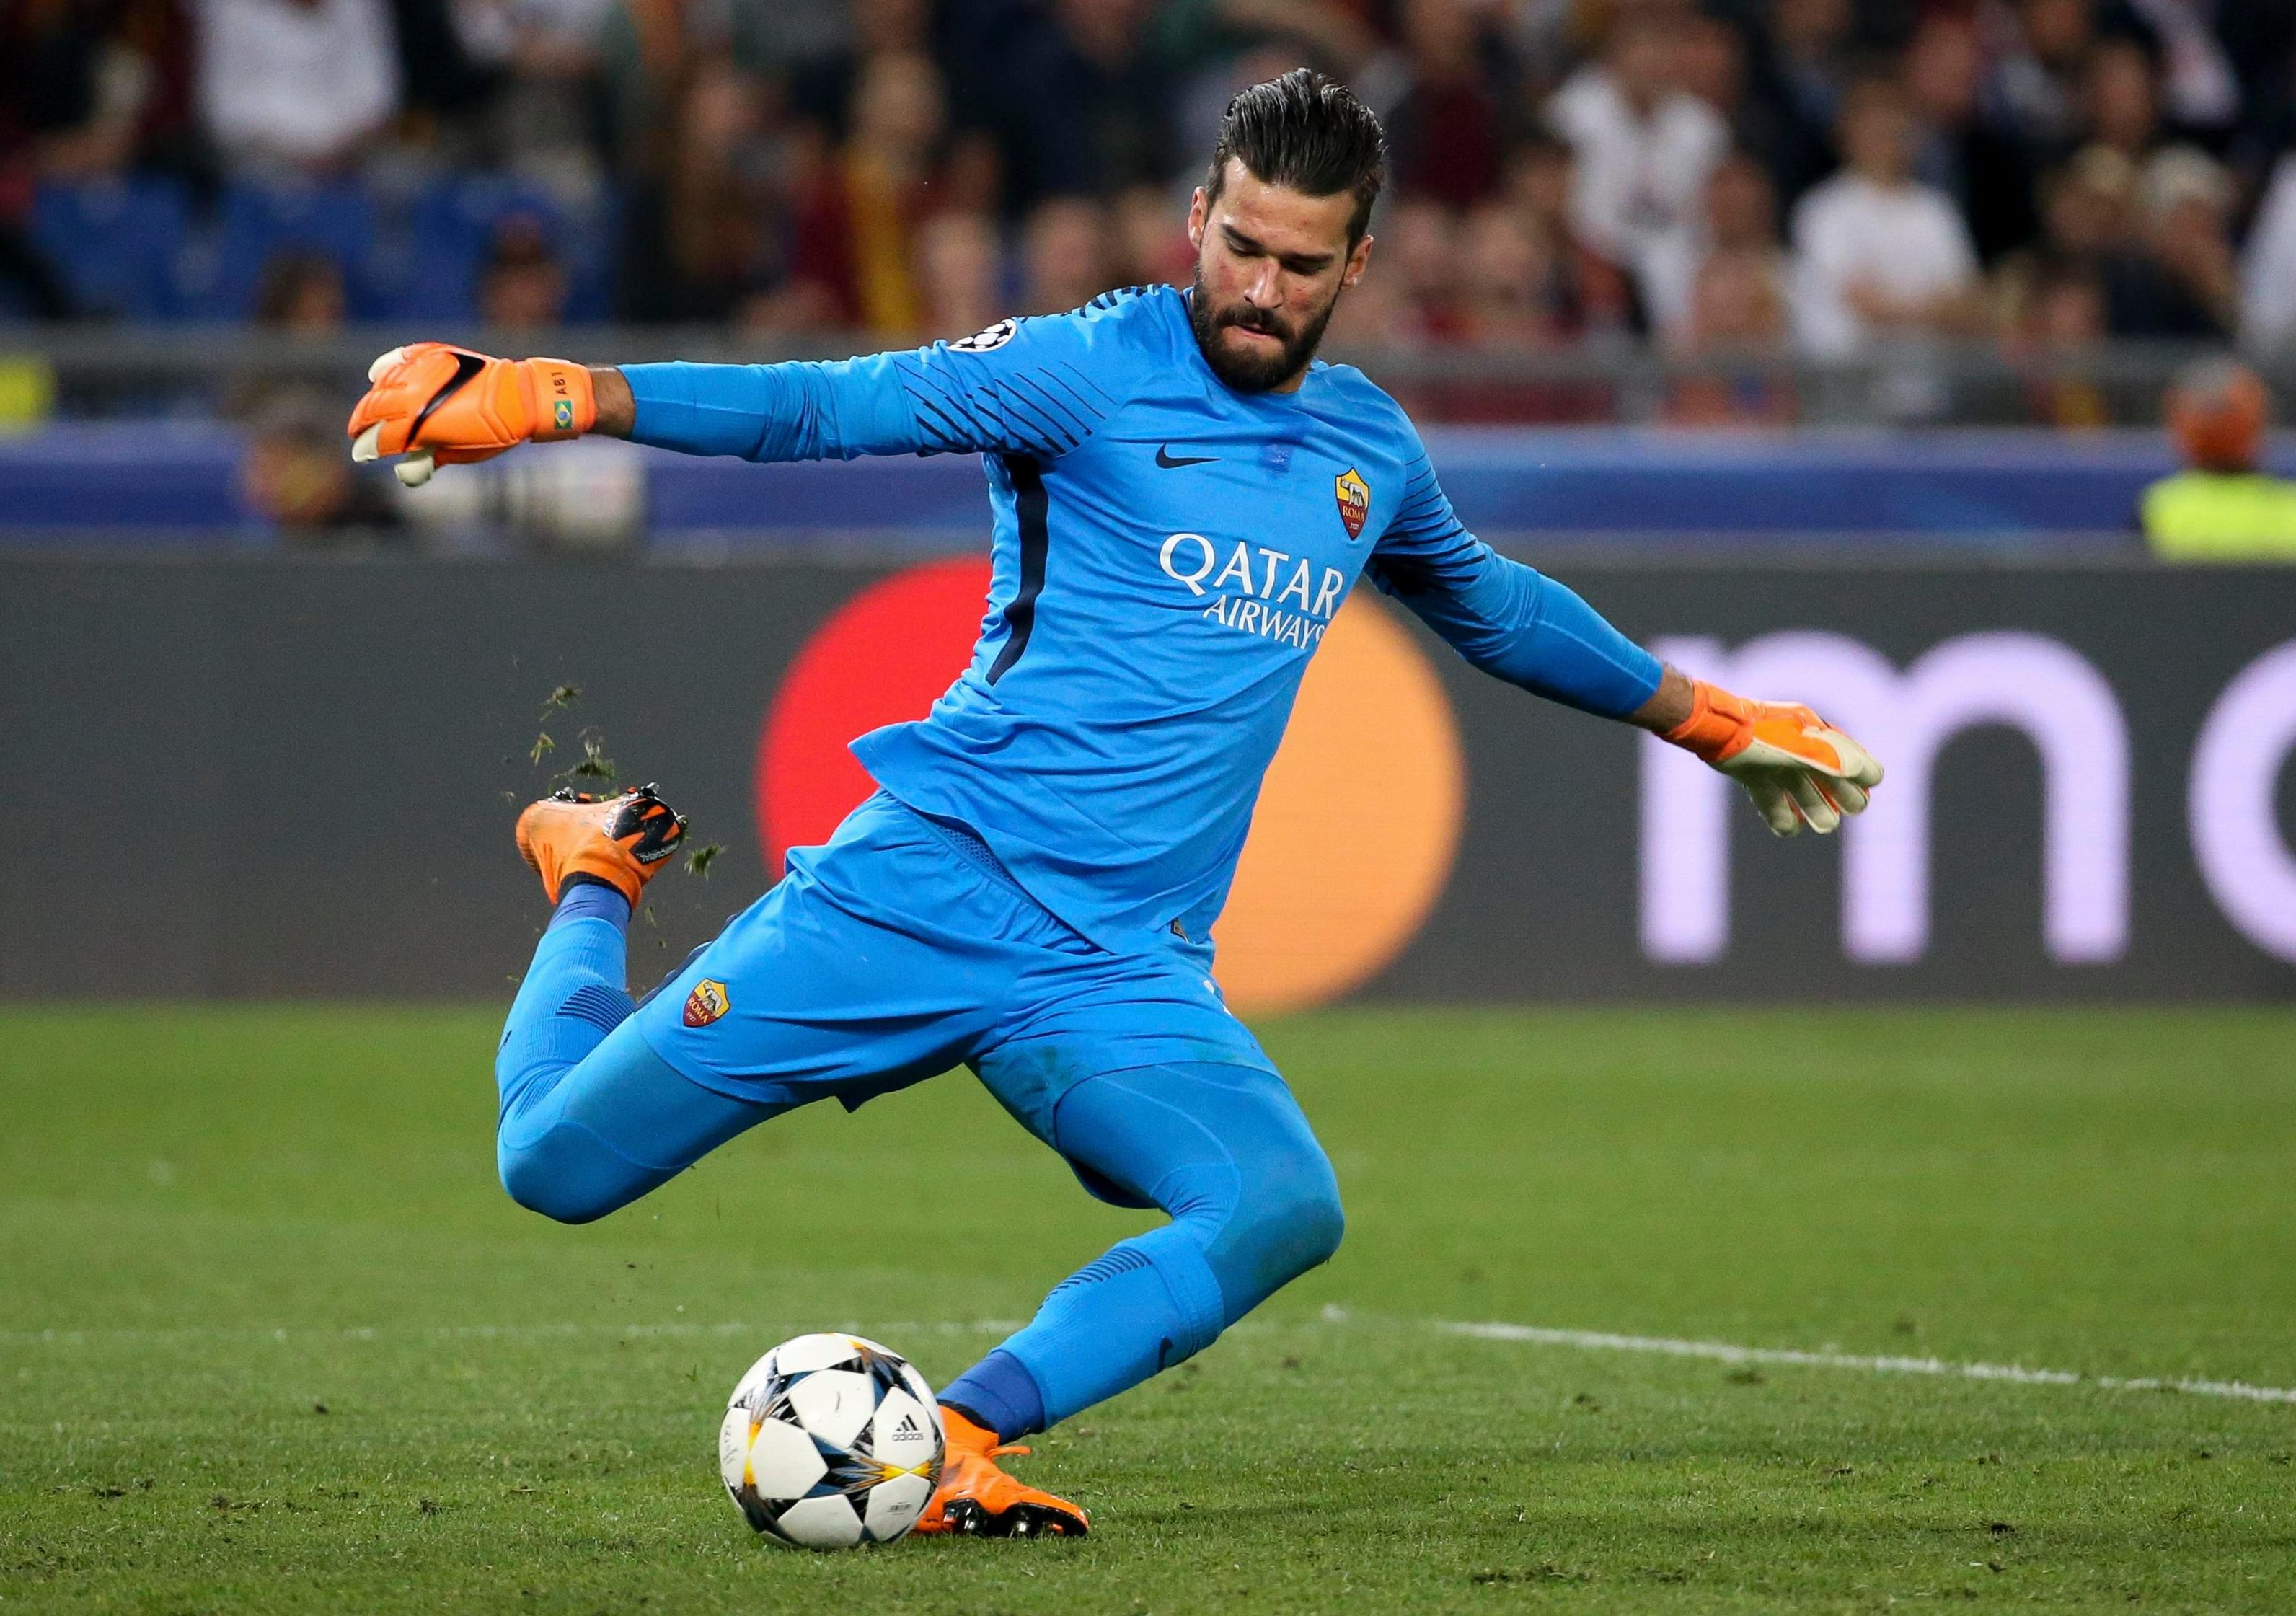 Alisson Becker has emerged as one of the top stoppers in Italy and was the first-choice Brazil stopper at the World Cup as they made the quarter-finals